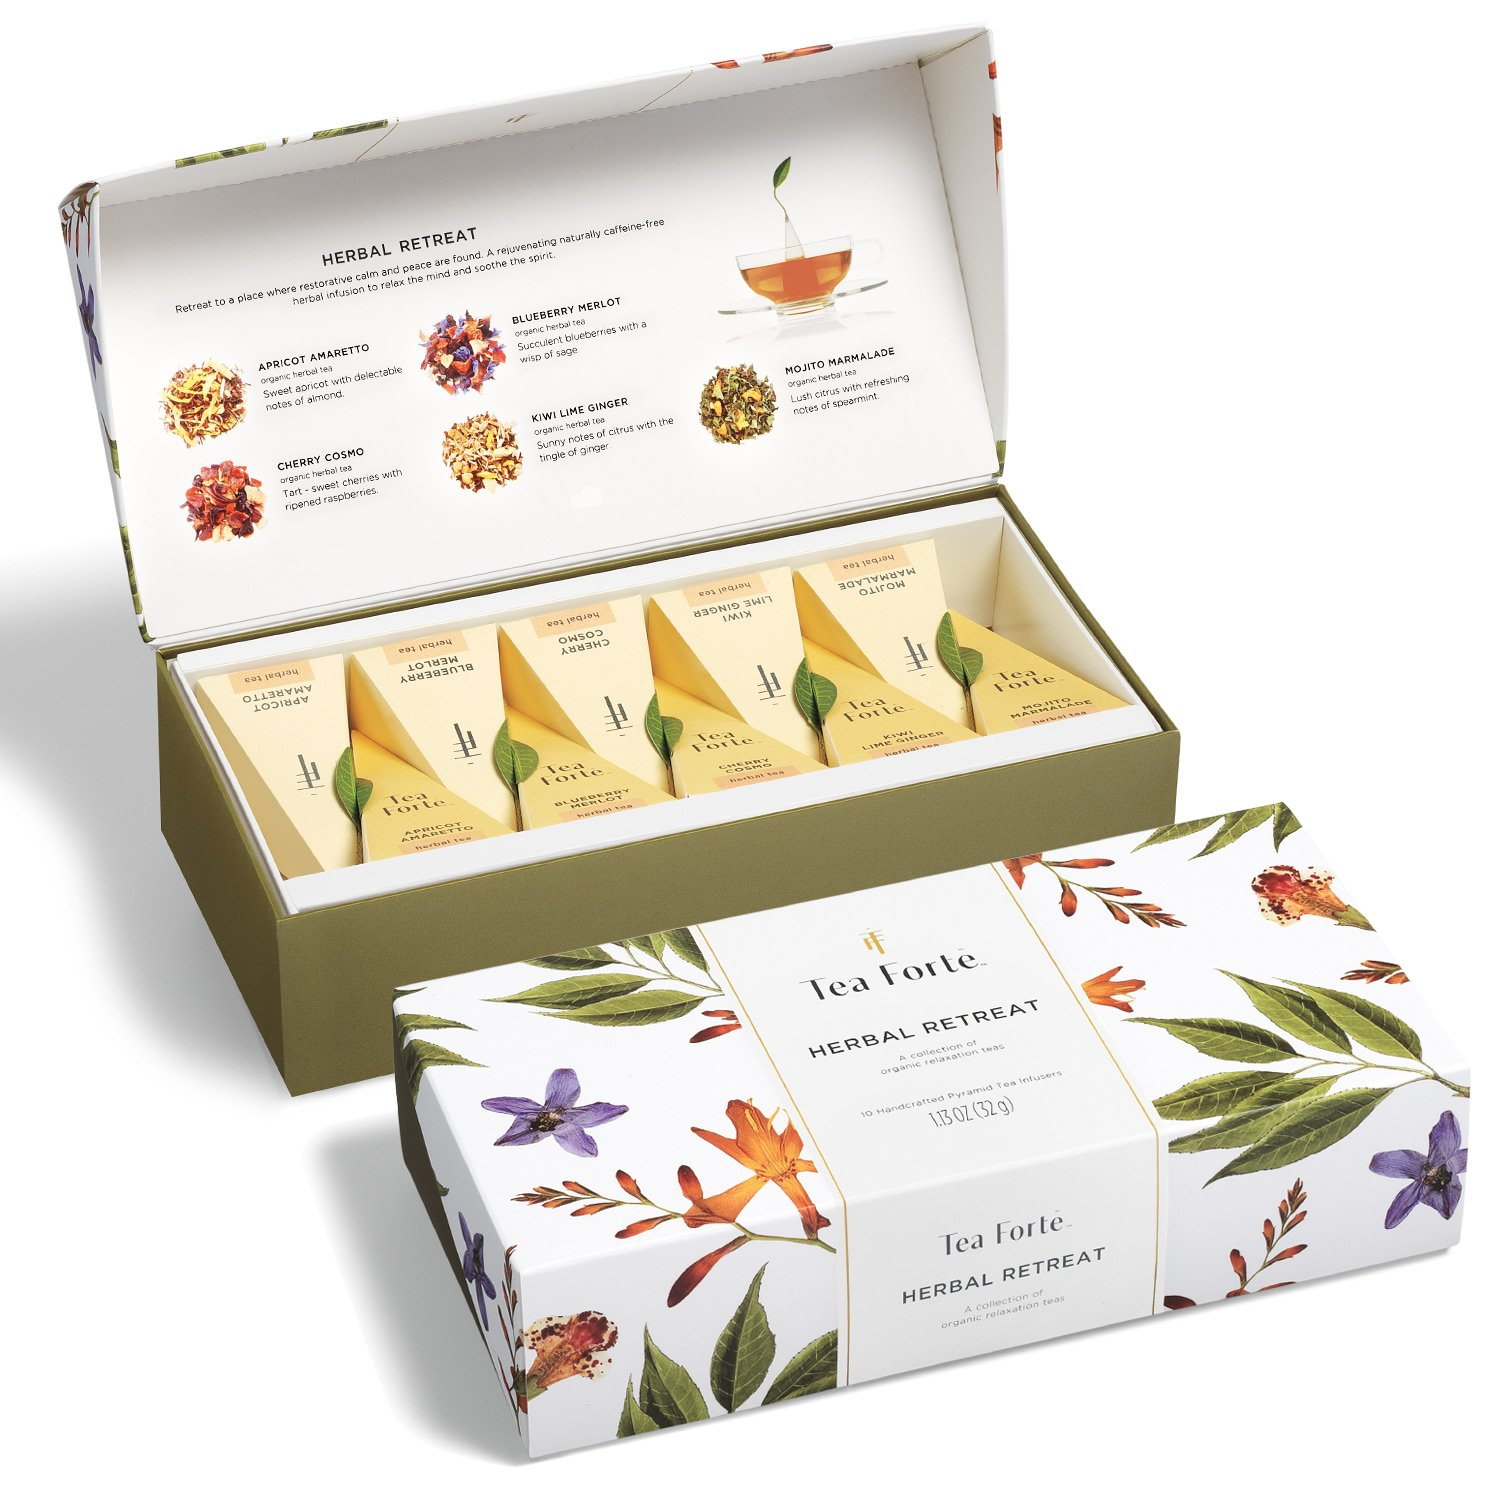 Tea Forté HERBAL RETREAT Petite Presentation Box Tea Sampler, Assorted Variety Tea Box, 10 Handcrafted Pyramid Tea Infusers - Relaxing Herbal Tea